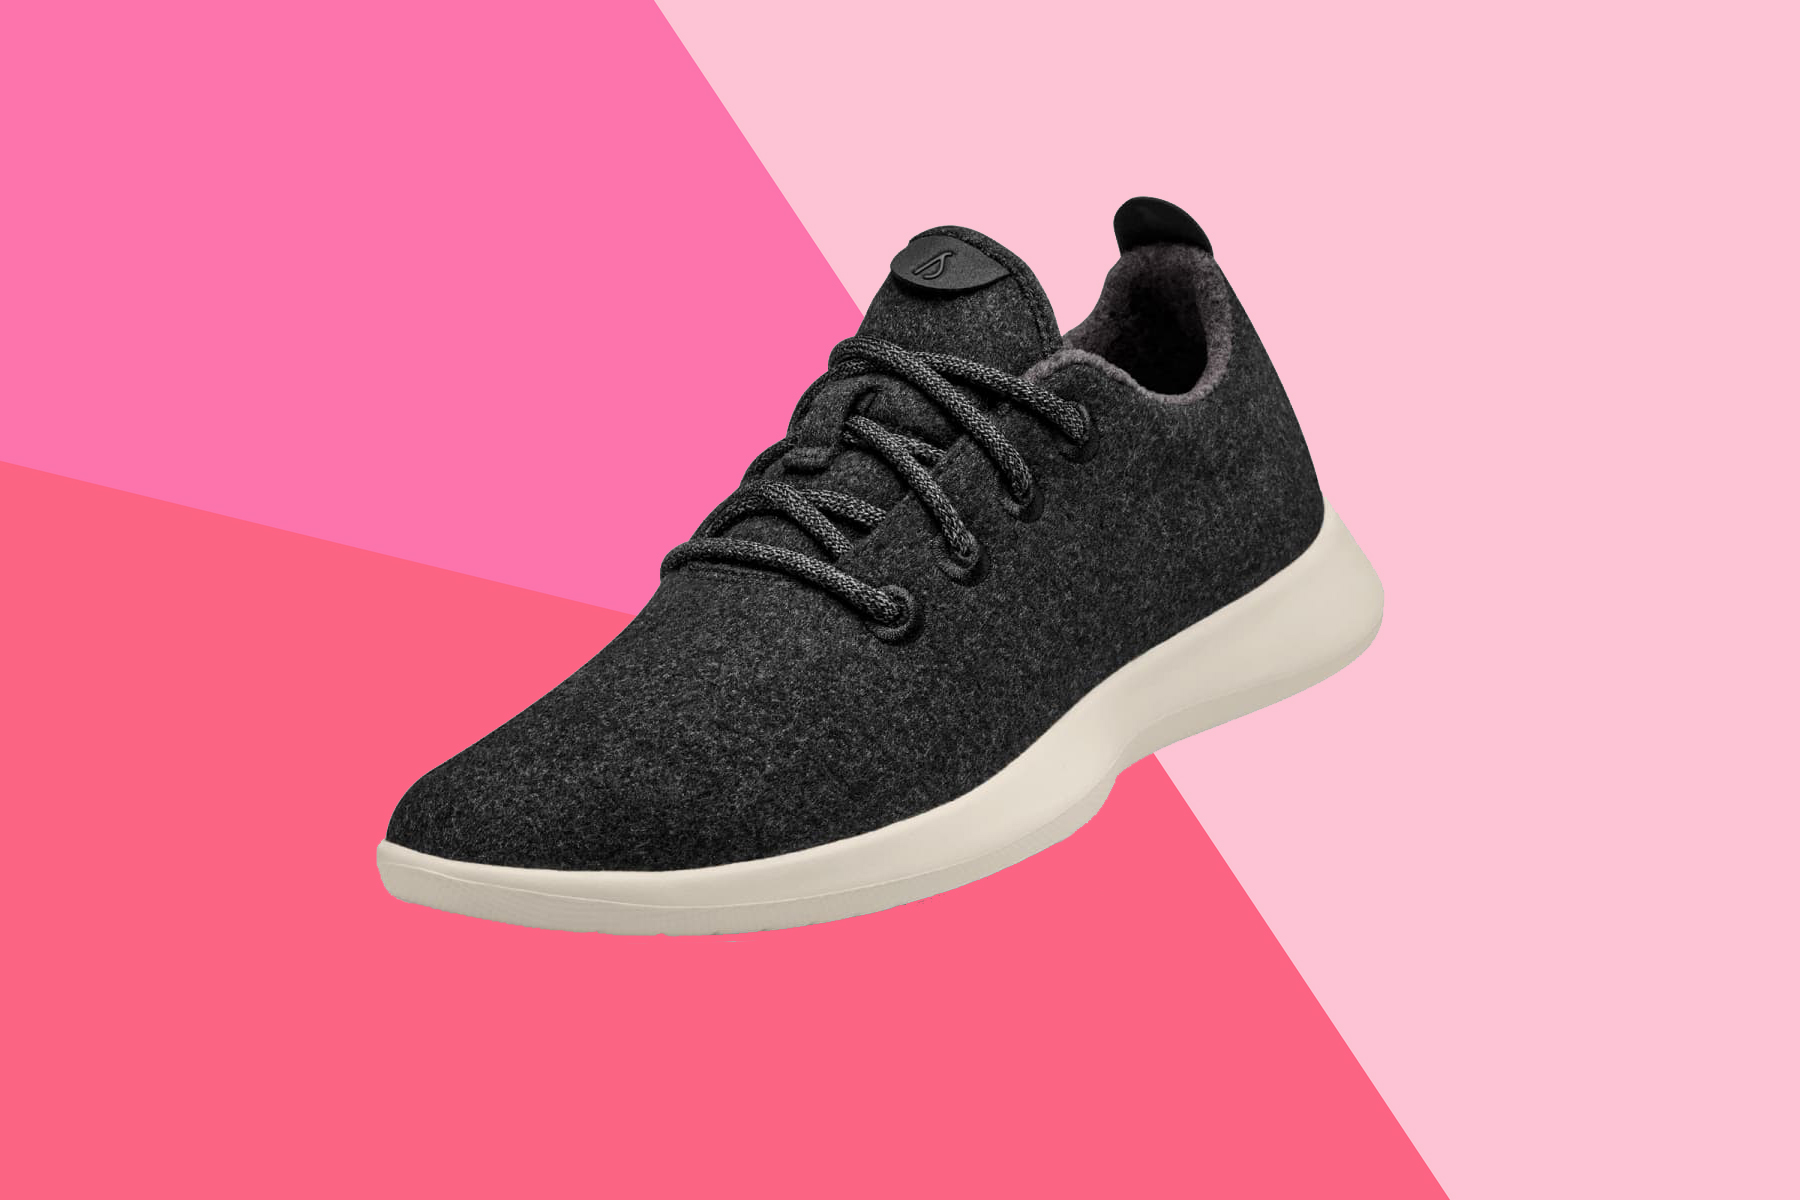 You Can Actually Put These Ridiculously Comfortable (and Stylish!) Sneakers in the Wash